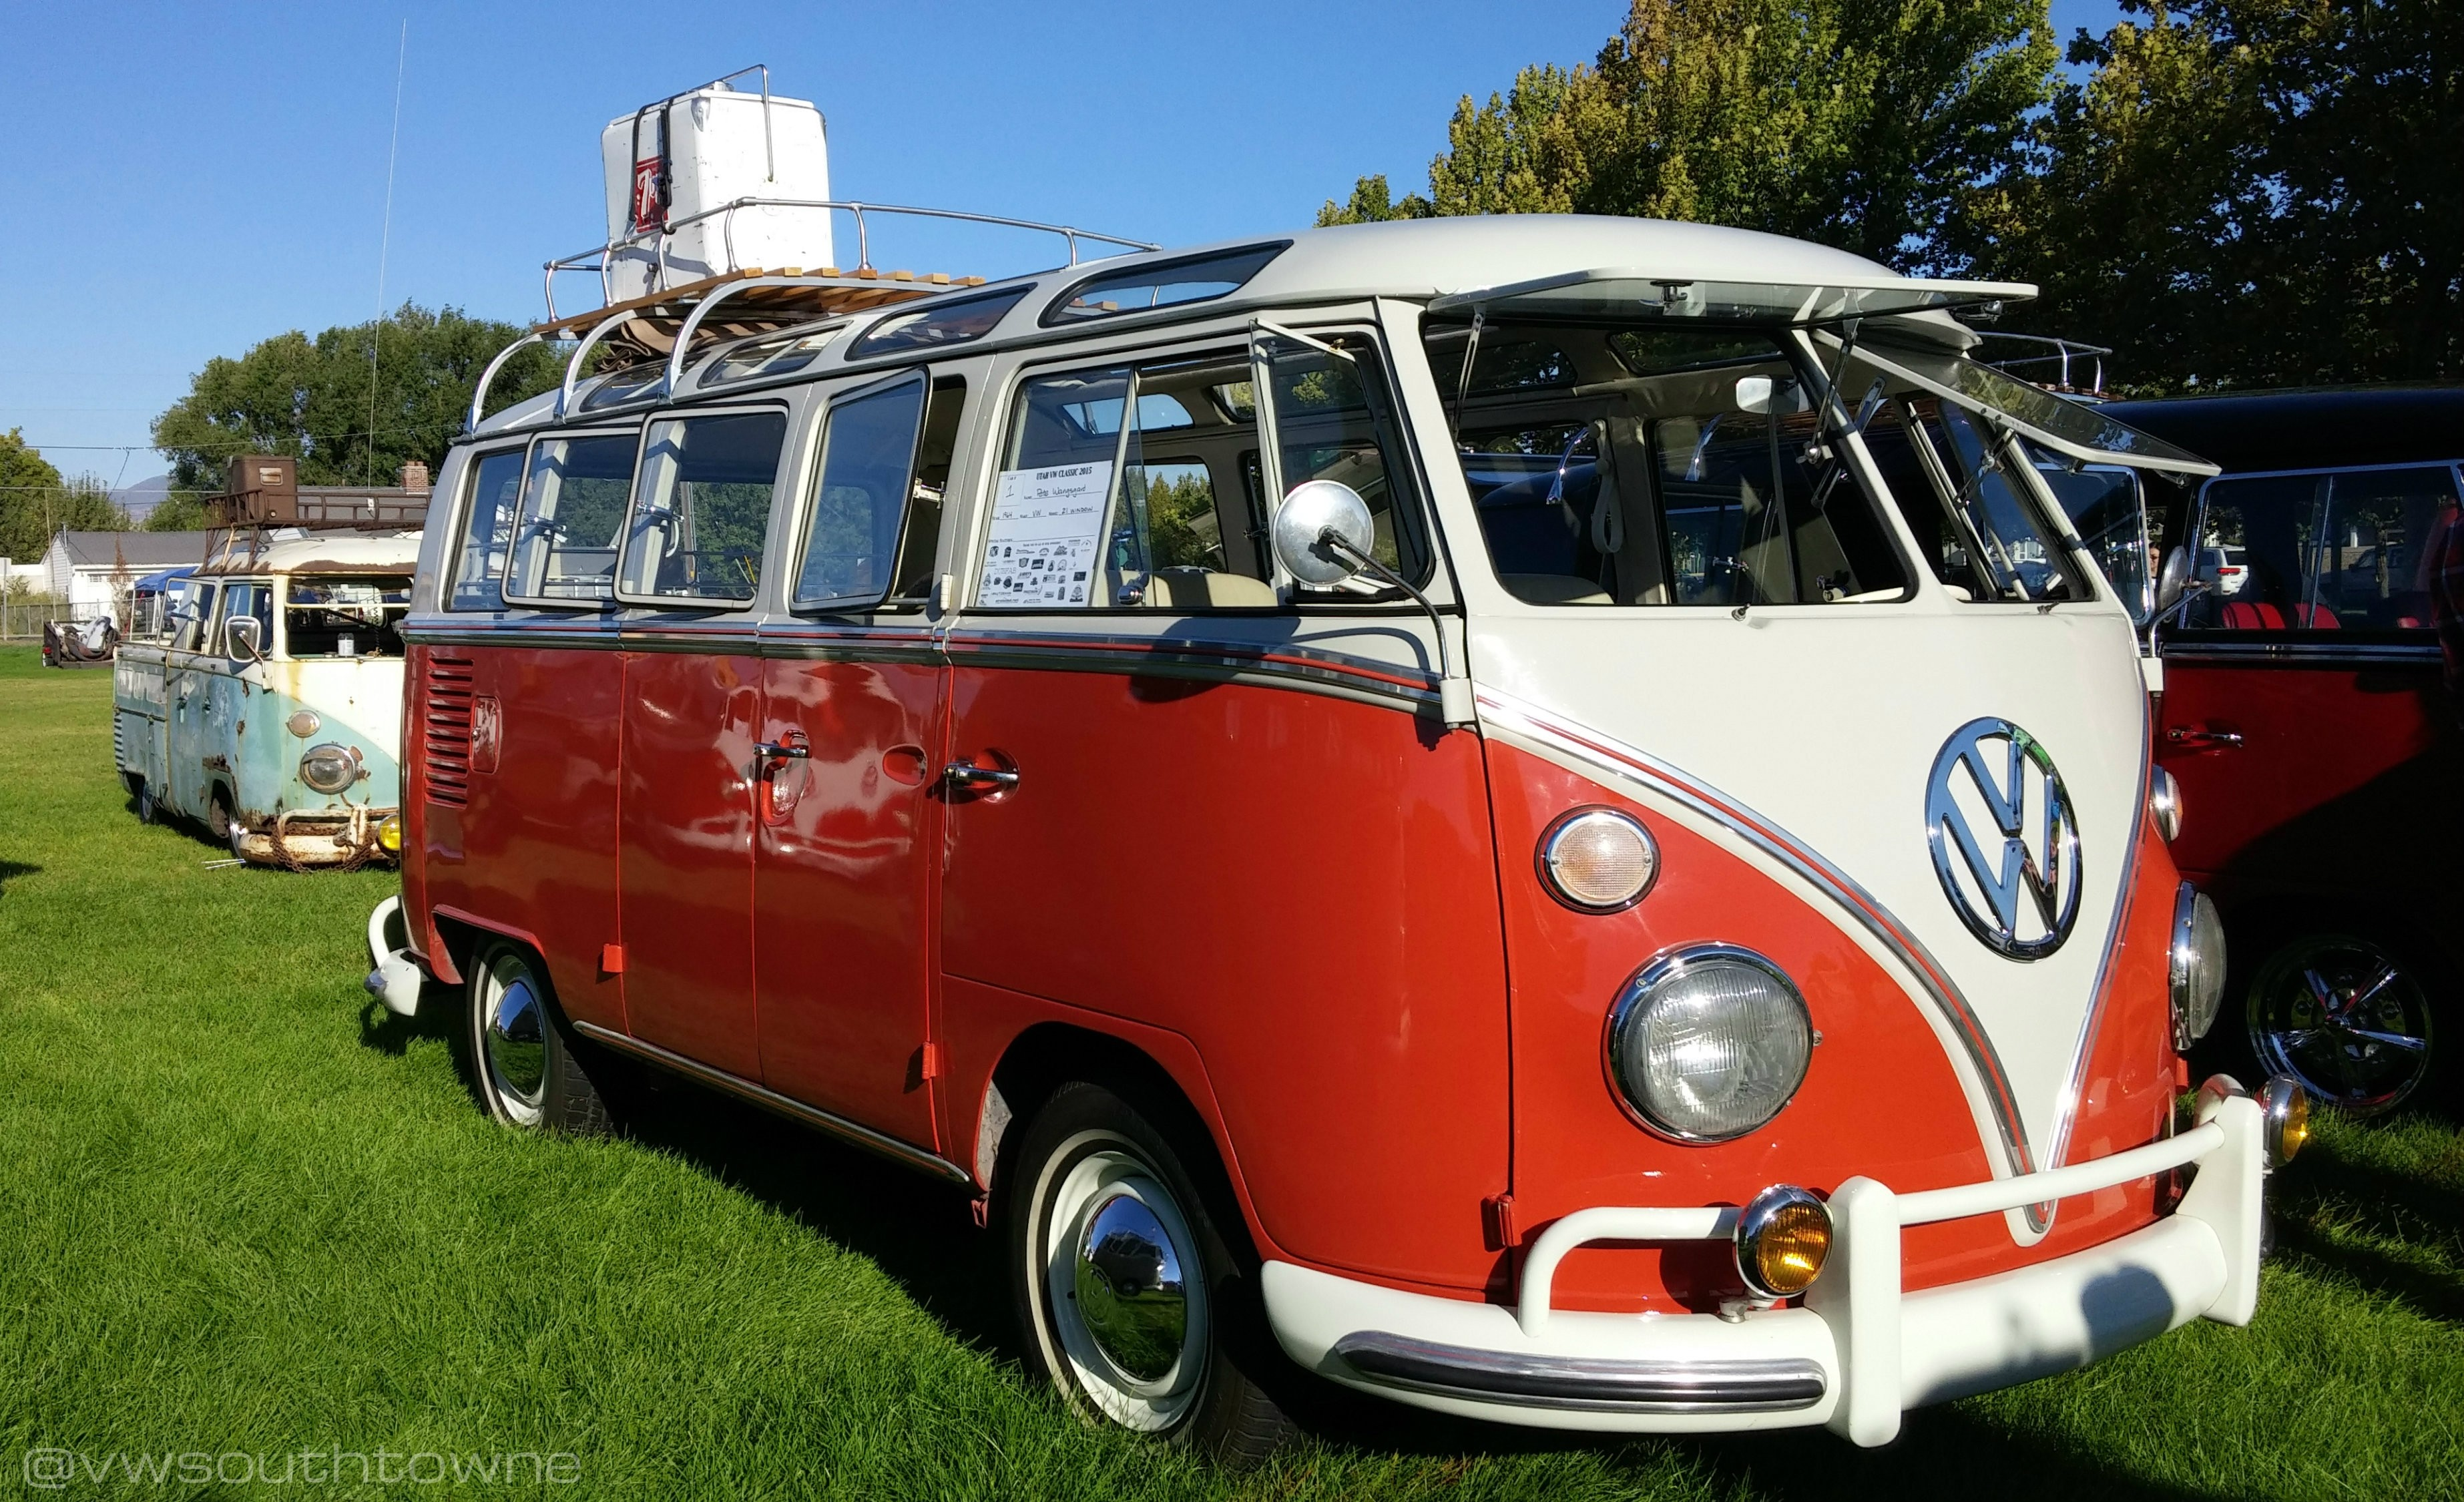 2015 utah vw classic car show volkswagen southtowne. Black Bedroom Furniture Sets. Home Design Ideas